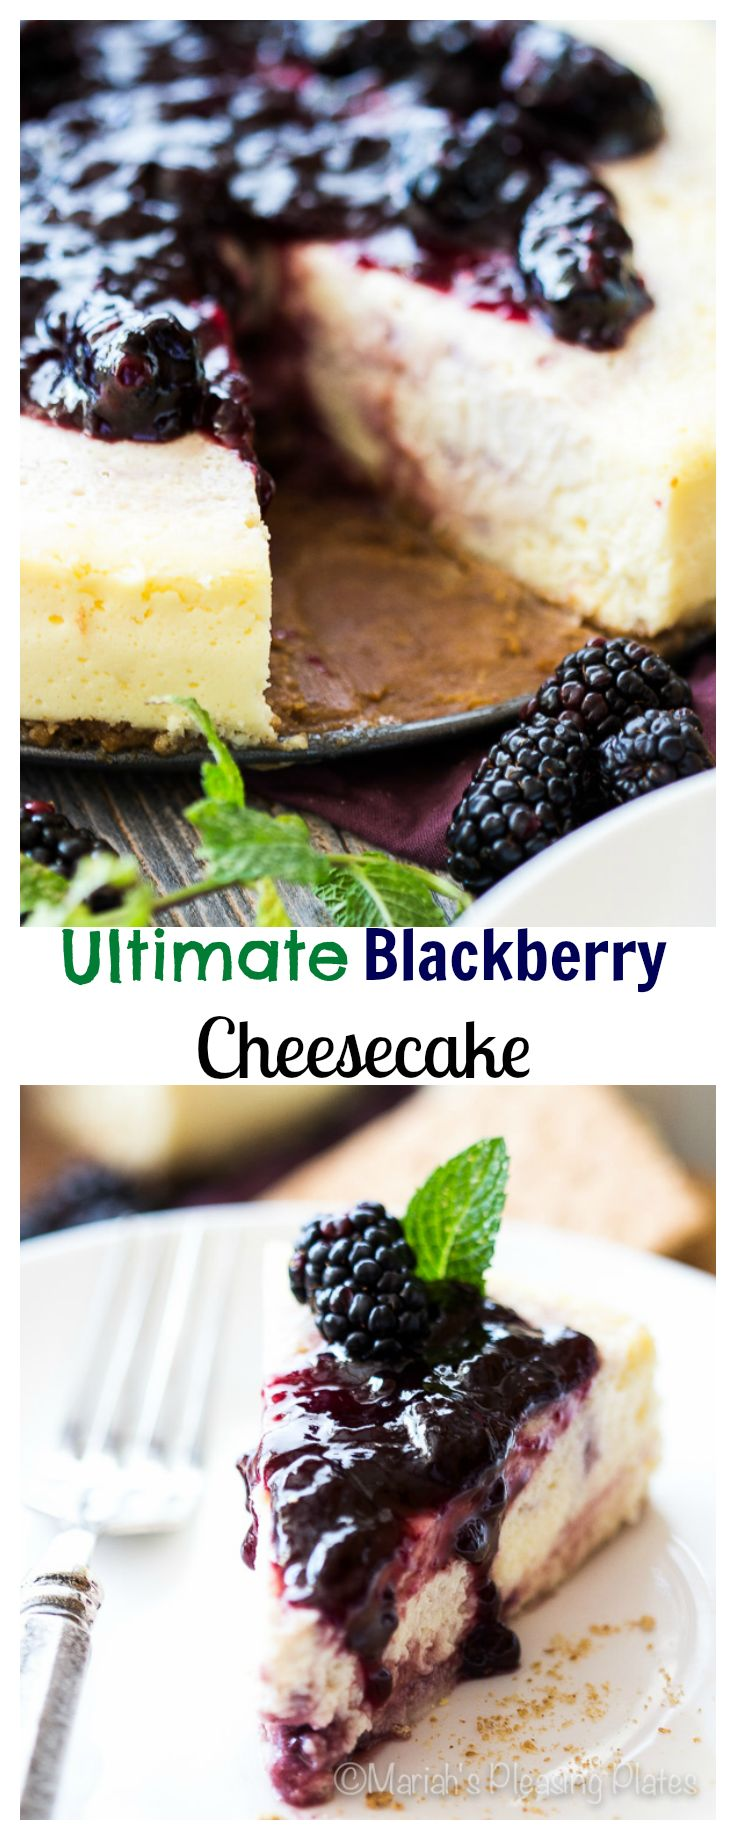 This thick and creamy treat is the Ultimate Double Blackberry Cheesecake, filled with blackberry swirls and a berry packed fresh fruit topping. This is one dessert that won't last long!